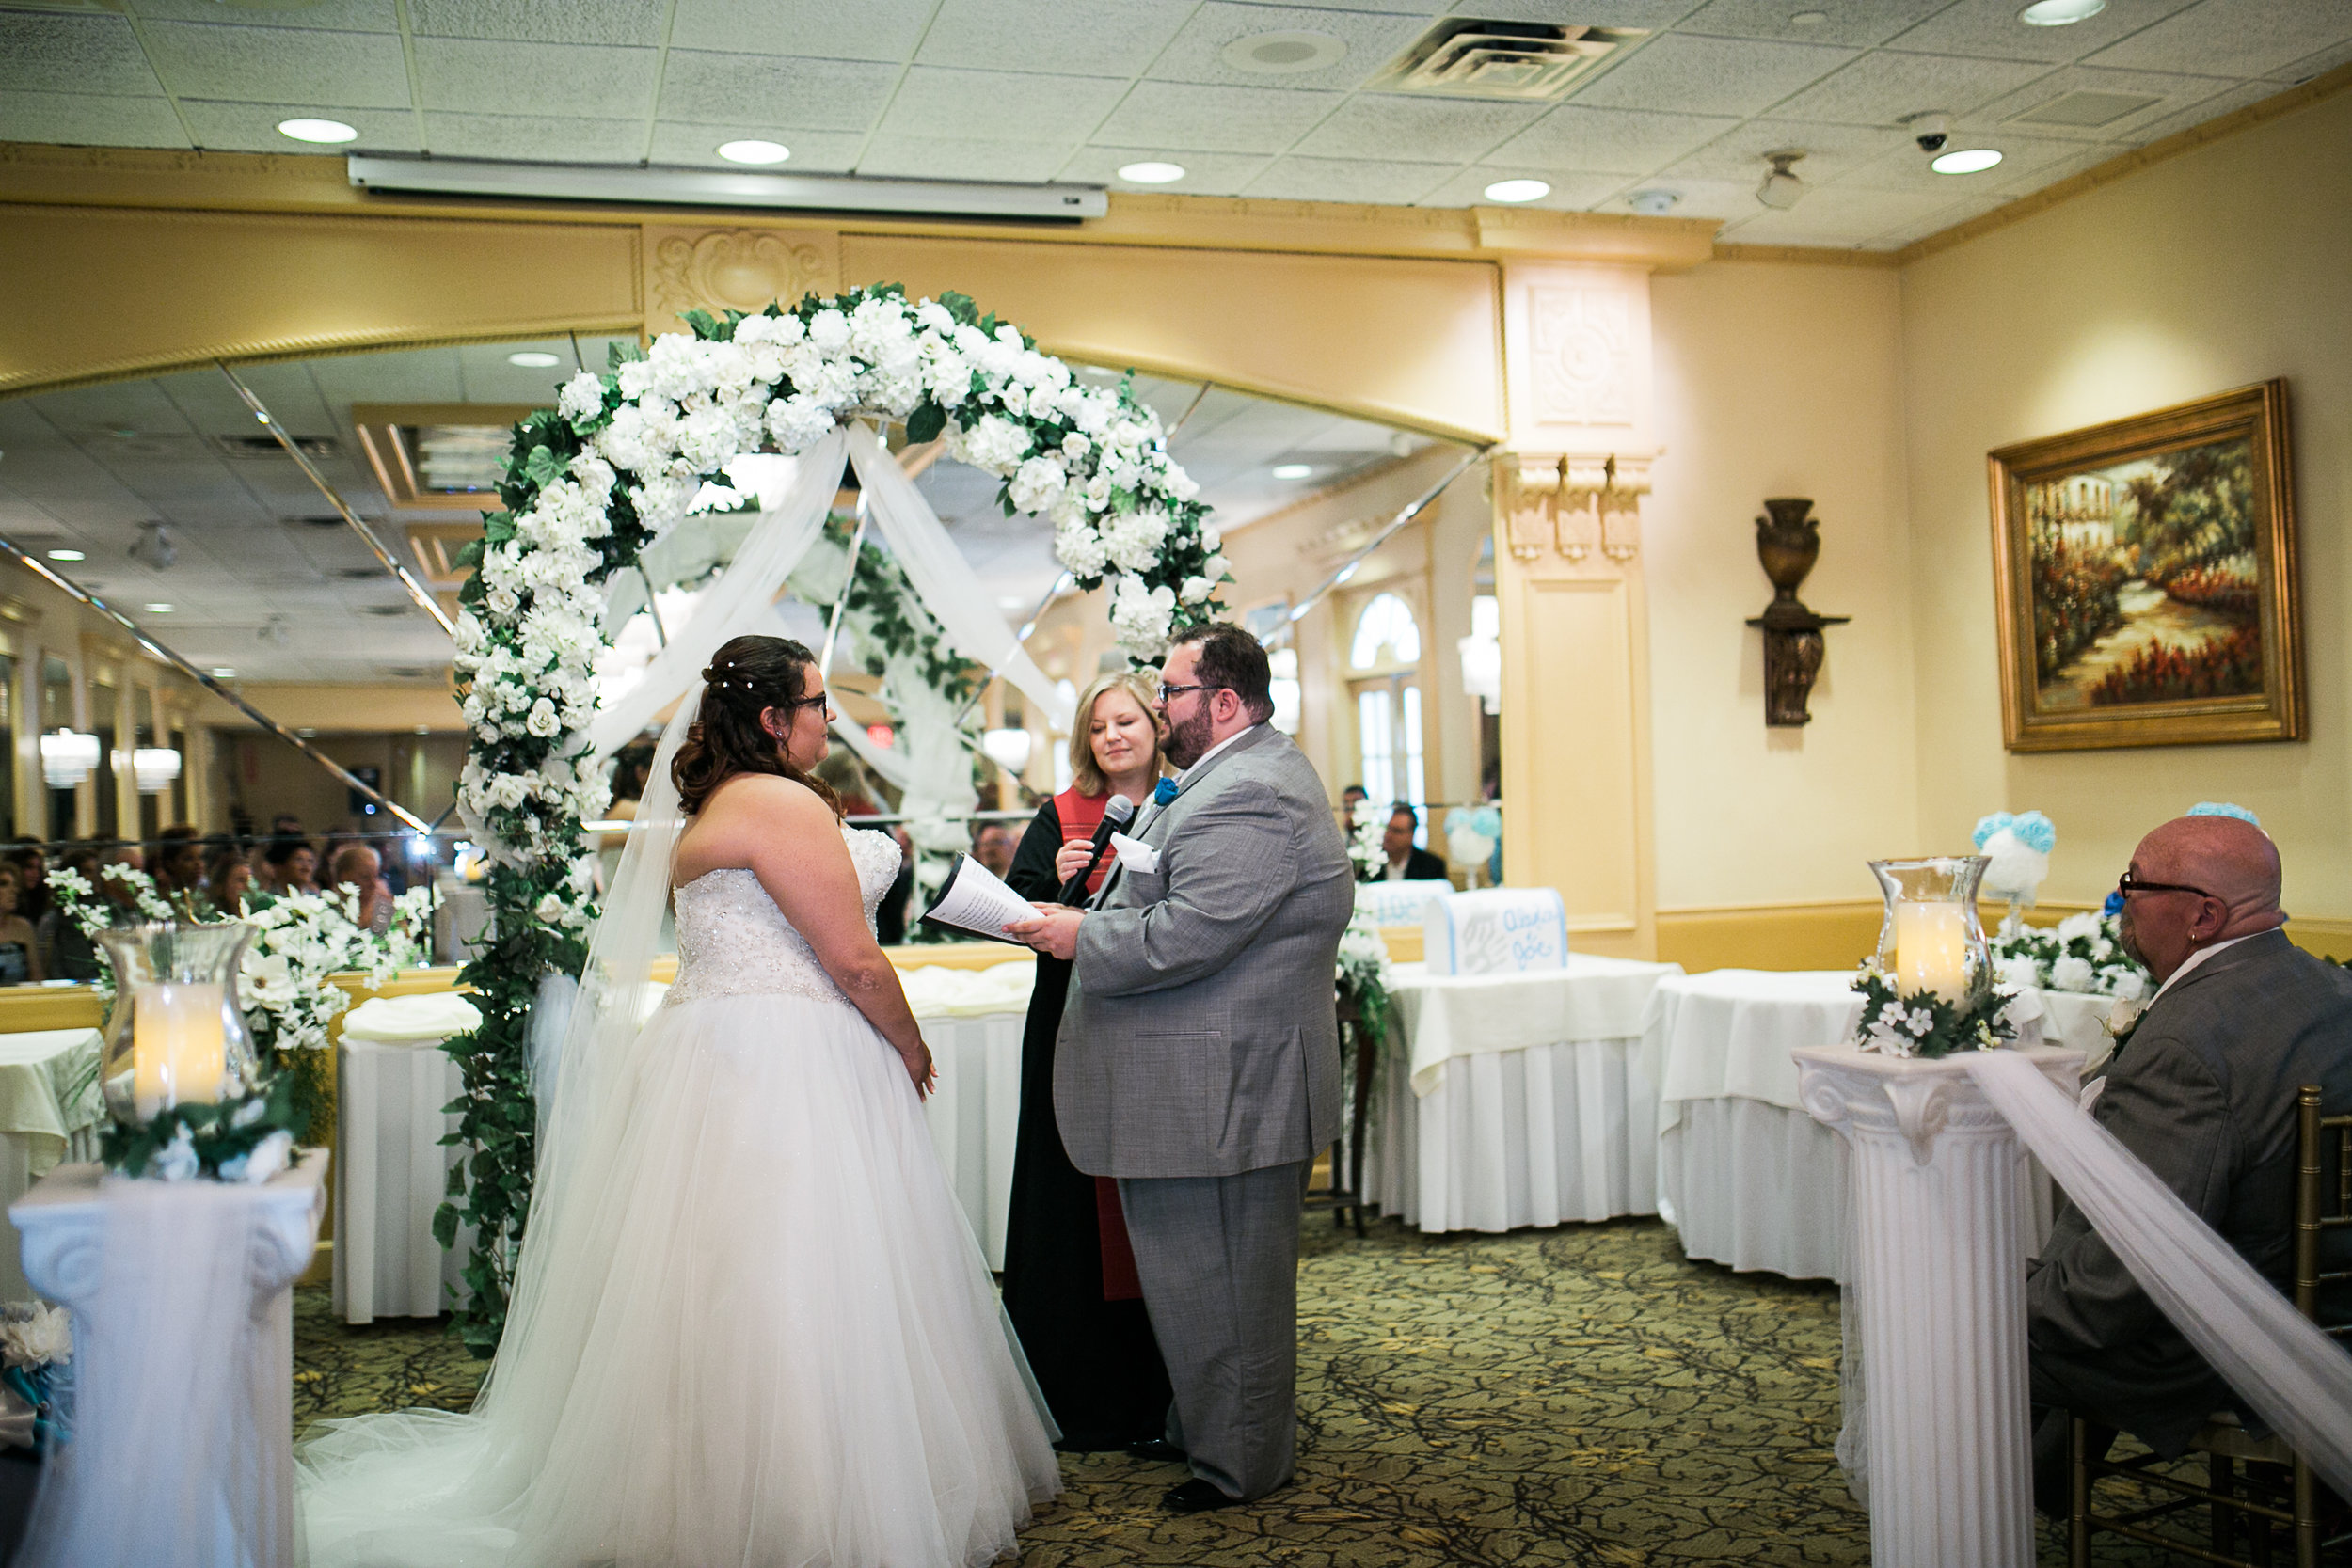 Disney Wedding New Jersey Sweet Alice Photography-1-40.jpg